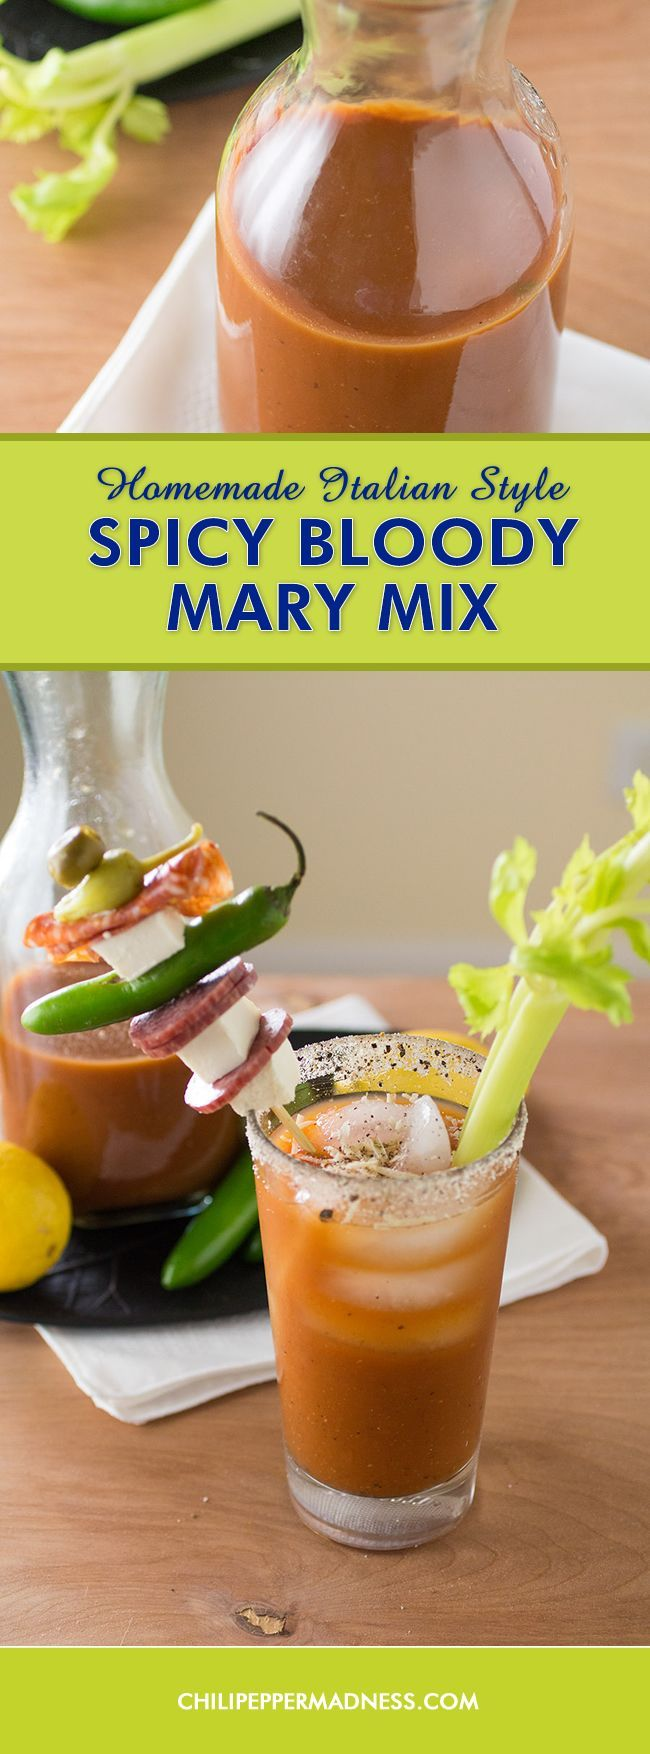 Homemade Italian Style Spicy Bloody Mary Mix - Make your own garden fresh Bloody Mary mix at home with this recipe that includes tomatoes and peppers picked straight from the garden and plenty of Italian herbs and seasonings.